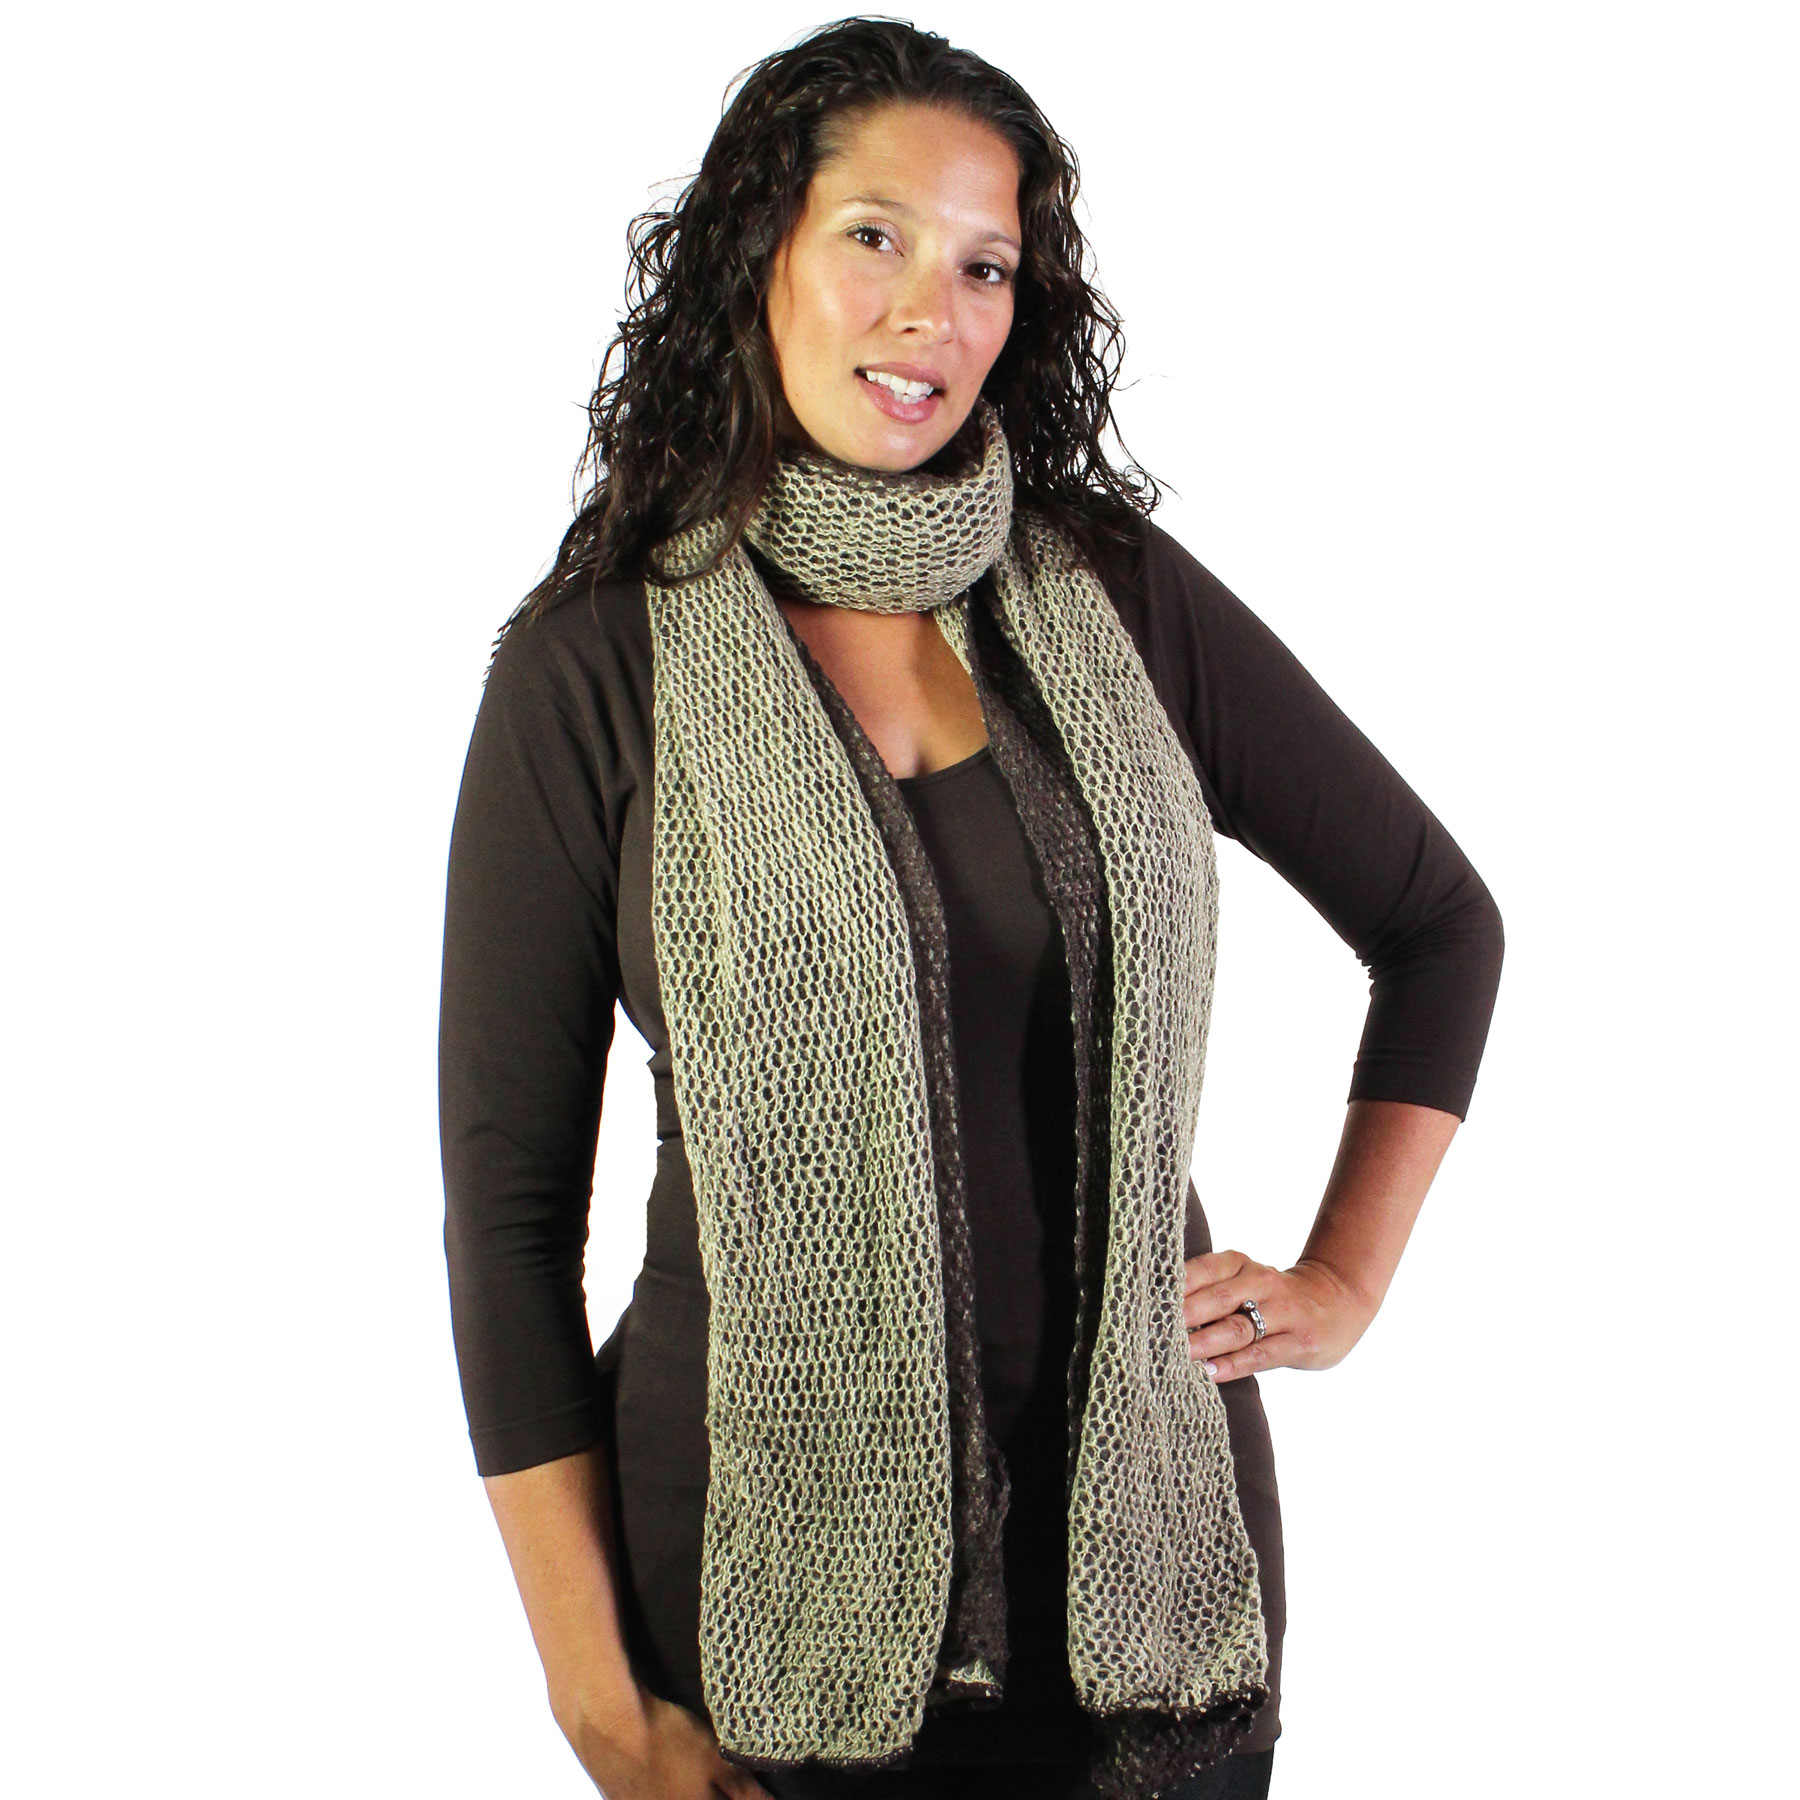 C Oblong Scarves - 3 in 1 Crochet Two-Ply 8086